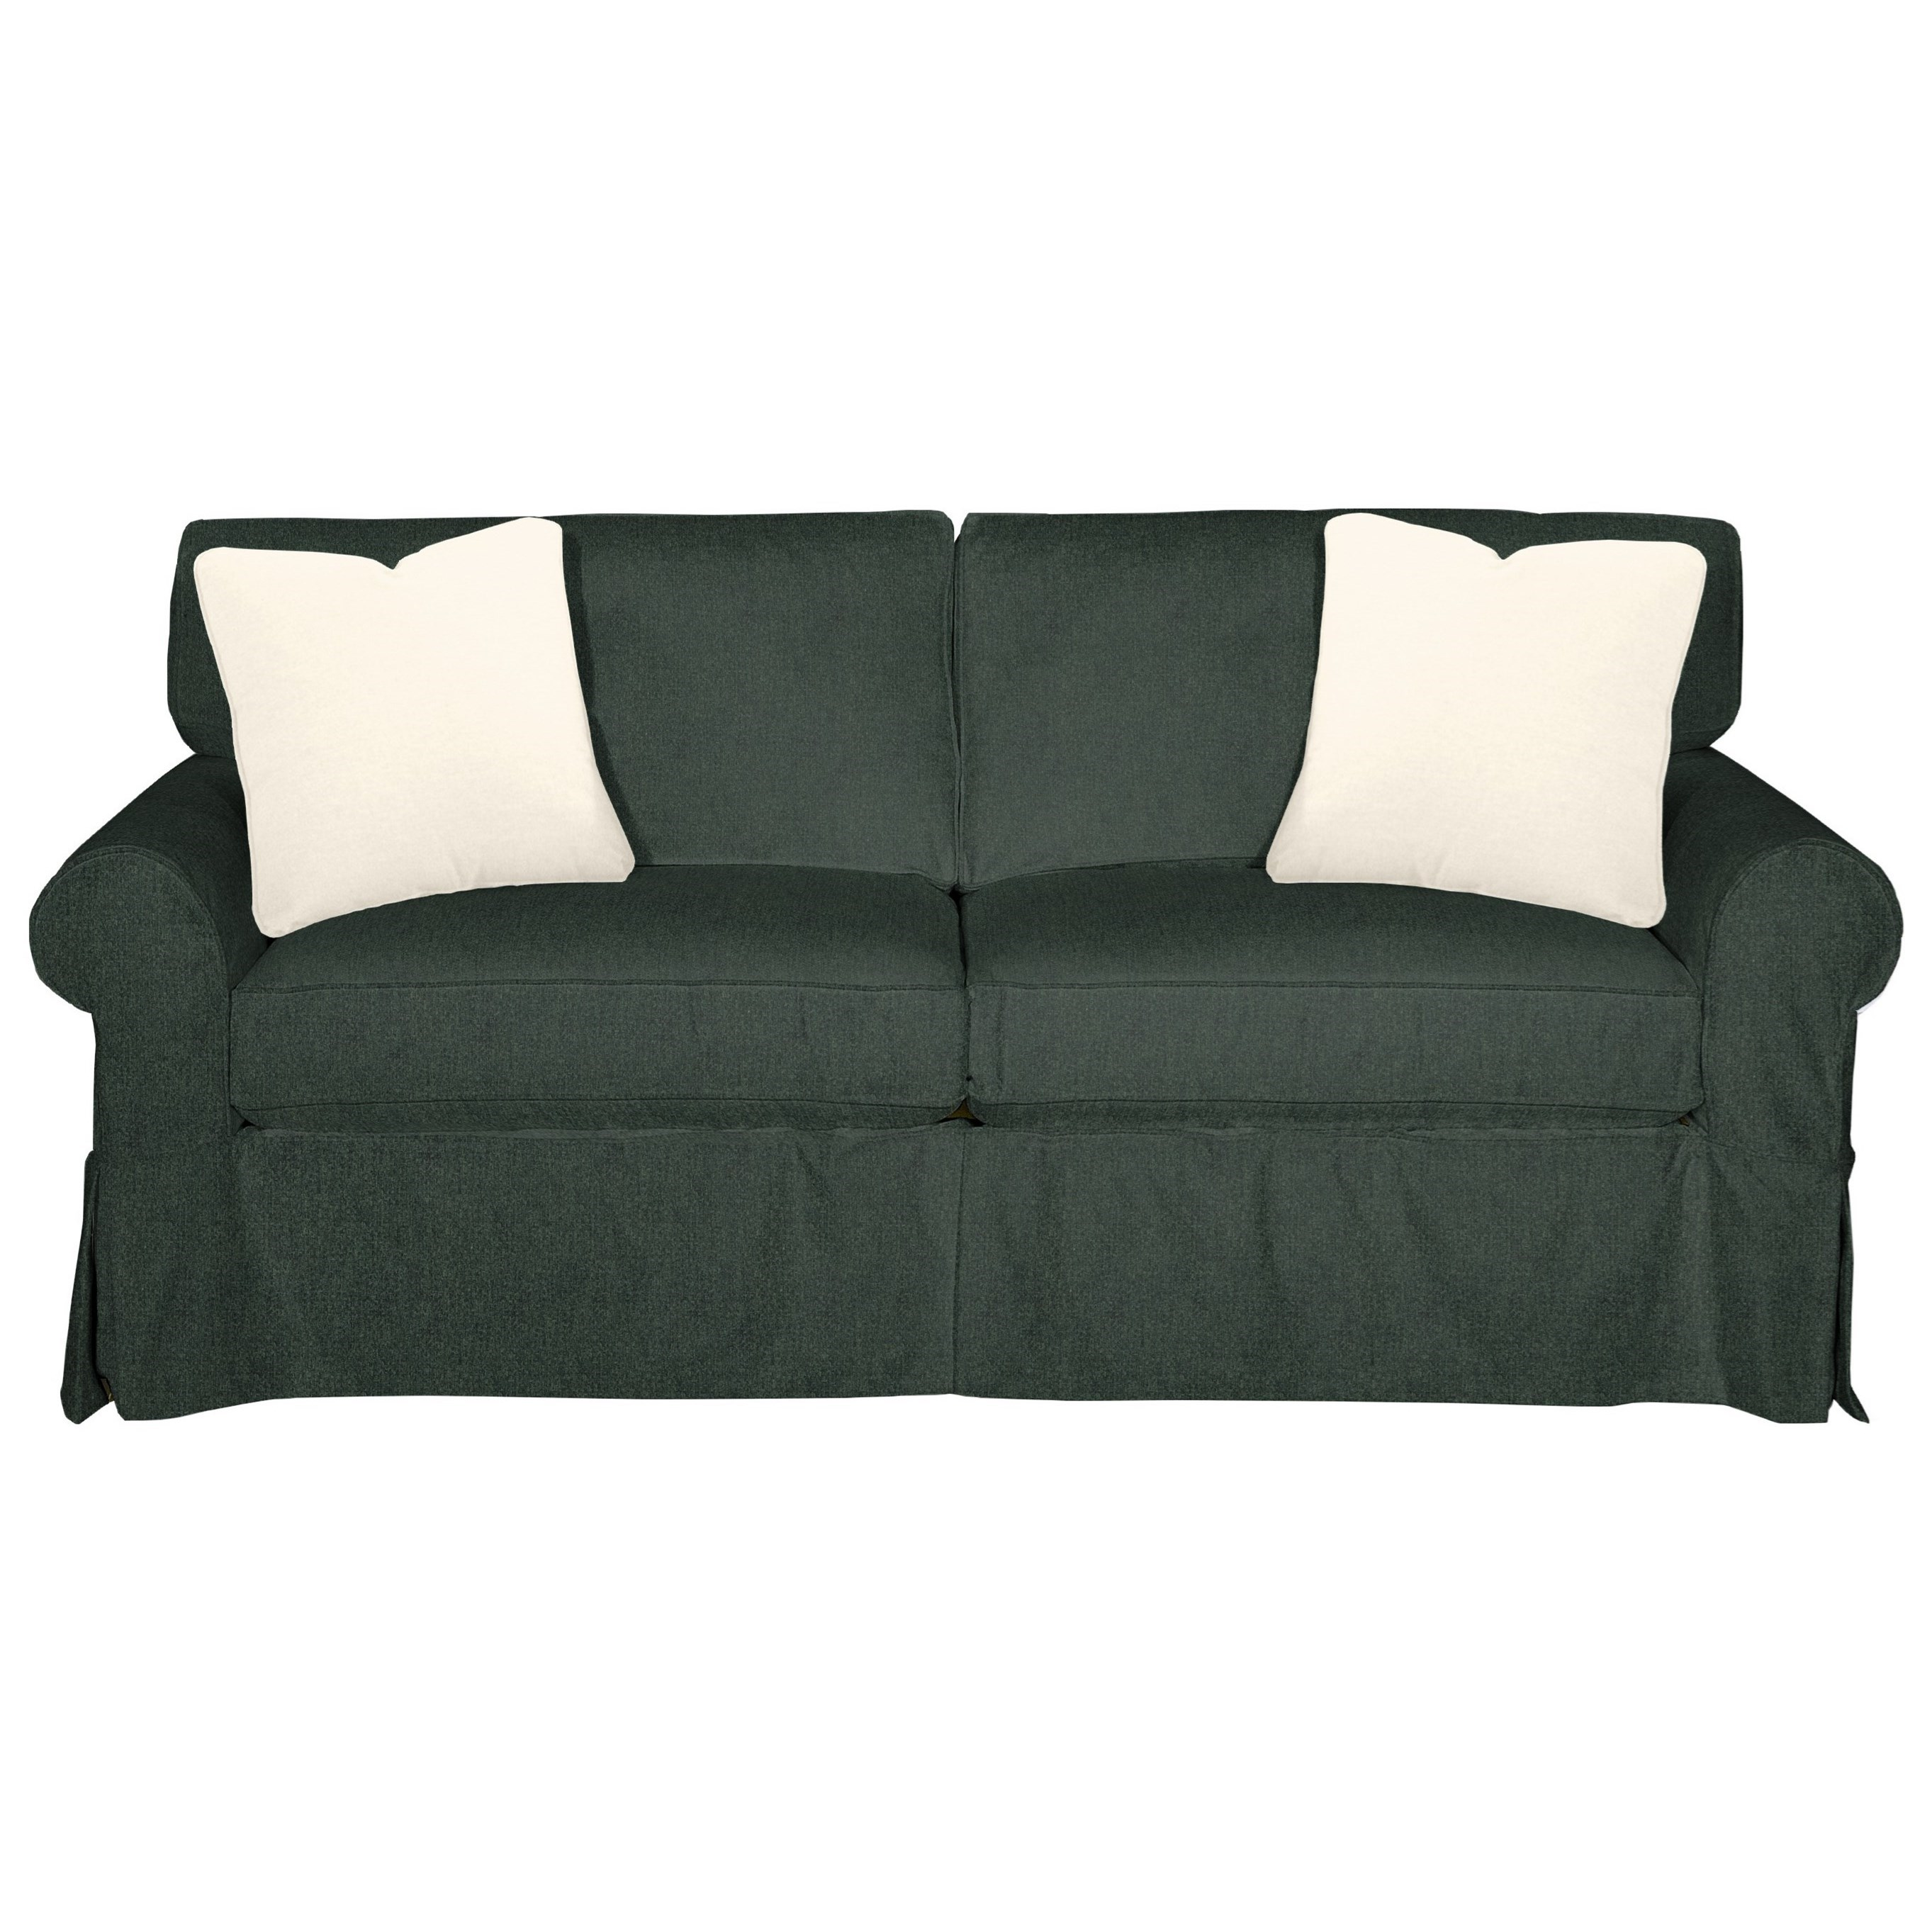 9228 Sleeper Sofa w/ Innerspring Mattress by Craftmaster at Story & Lee Furniture